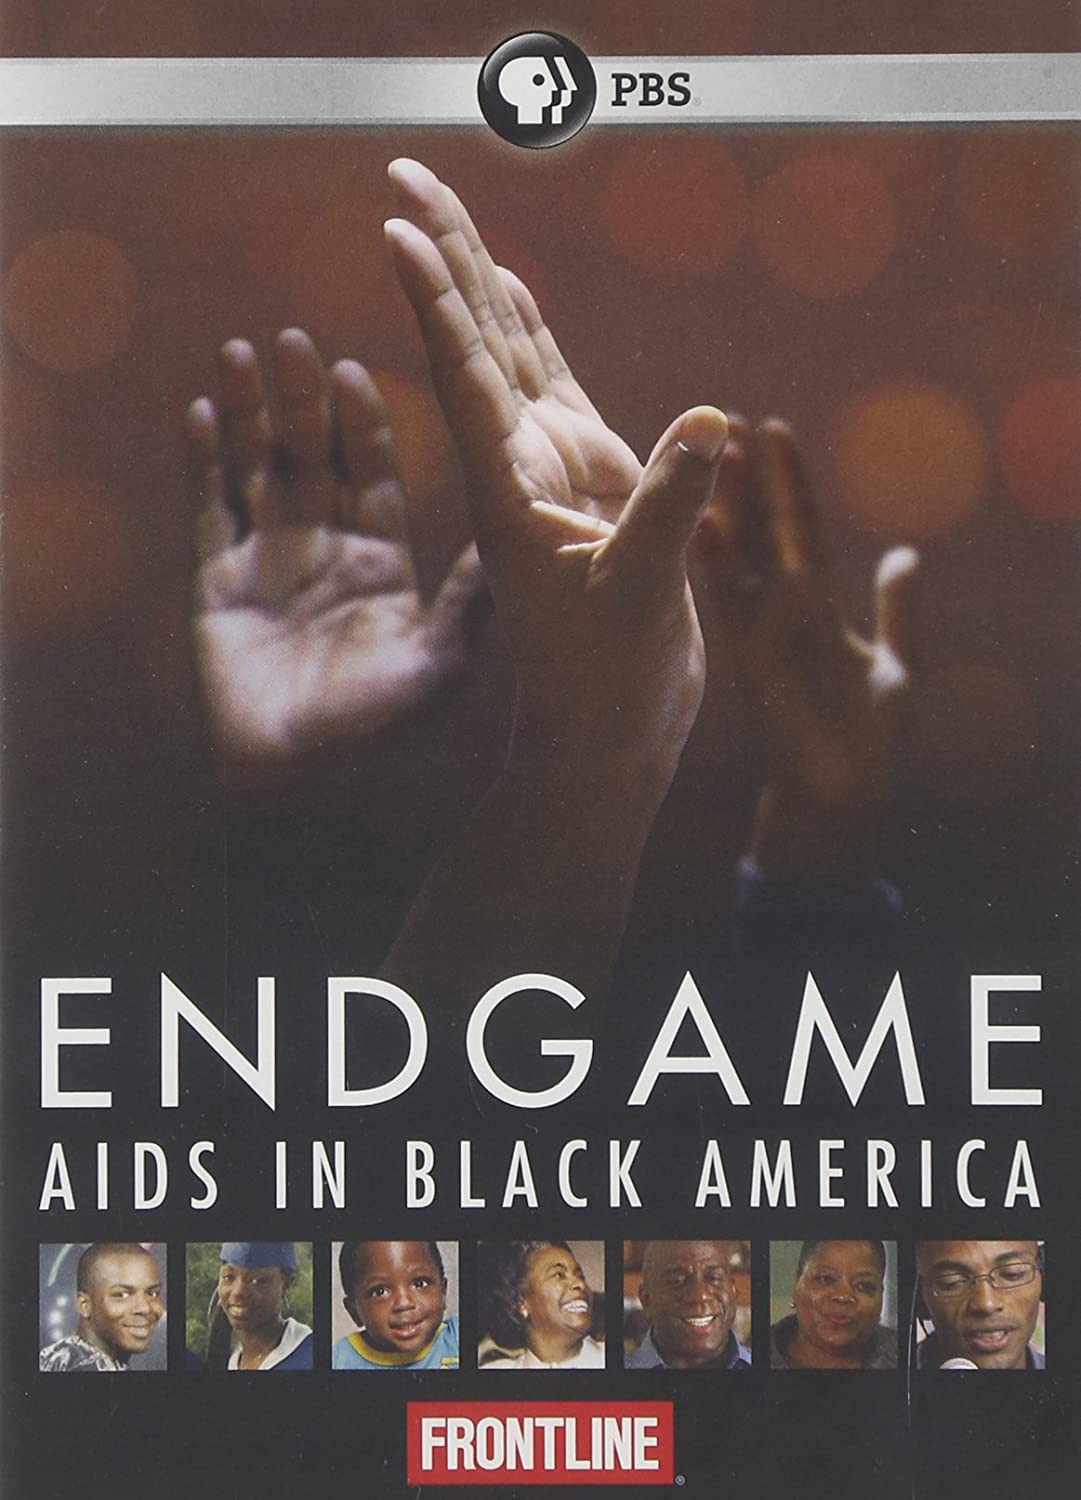 Frontline: National products Endgame - Aids Black America in San Antonio Mall